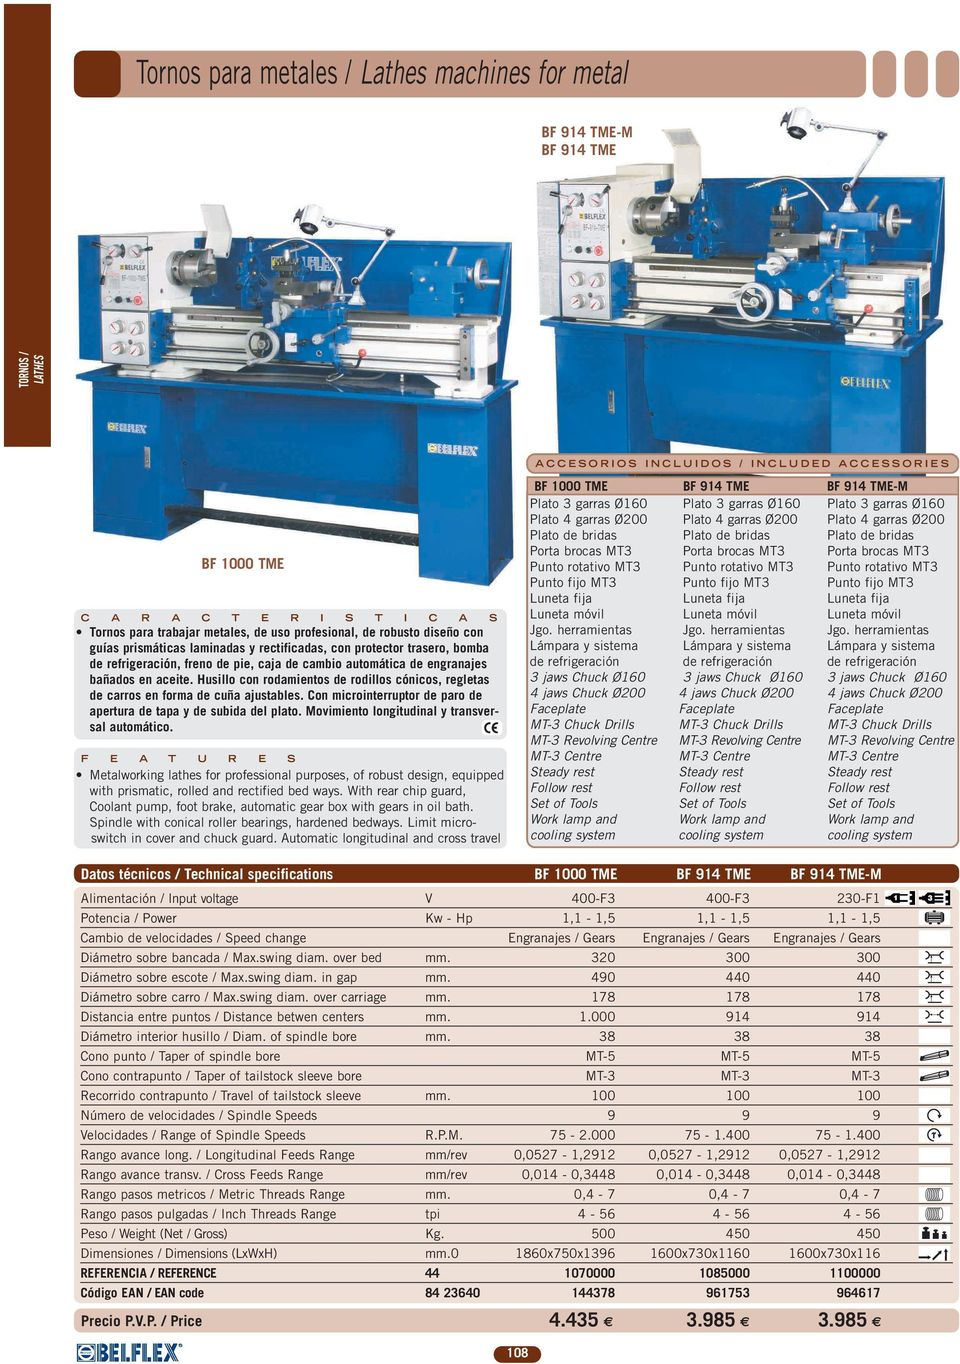 Torno industrial para metal / Industrial lathe machine for metal - PDF